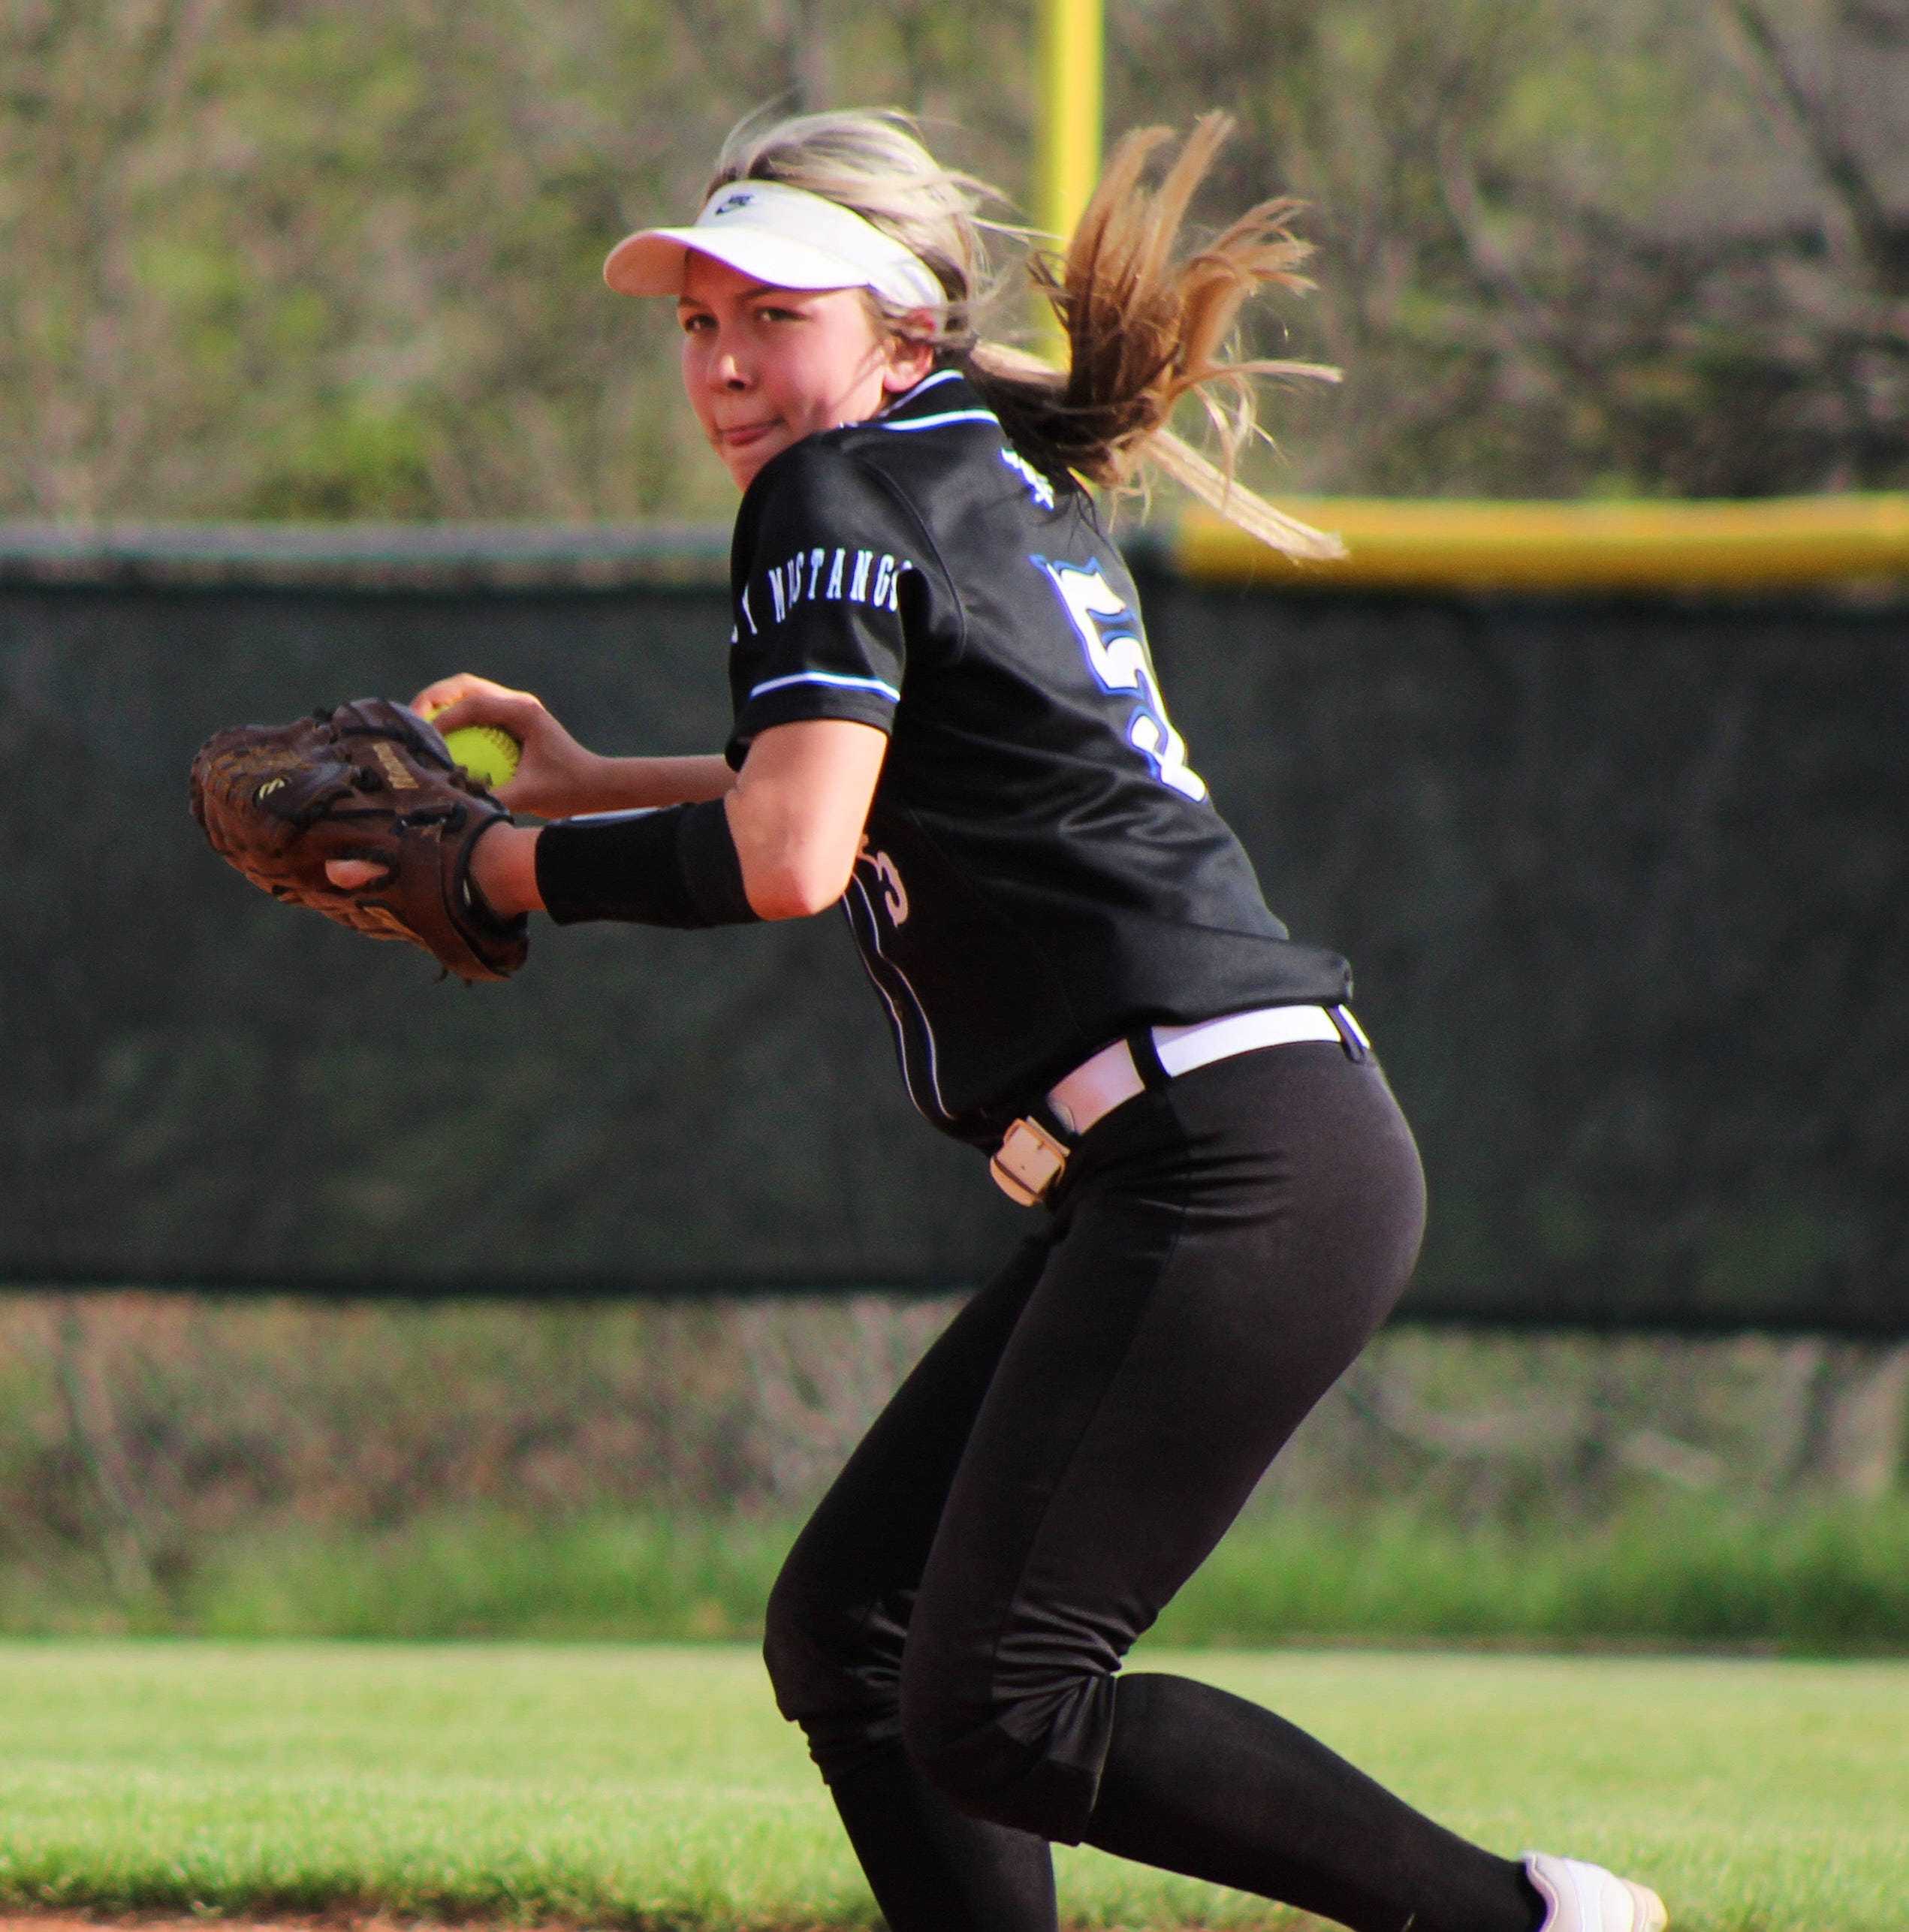 Softball roundup: City View, Graham knock off district leaders; Windthorst maintains lead